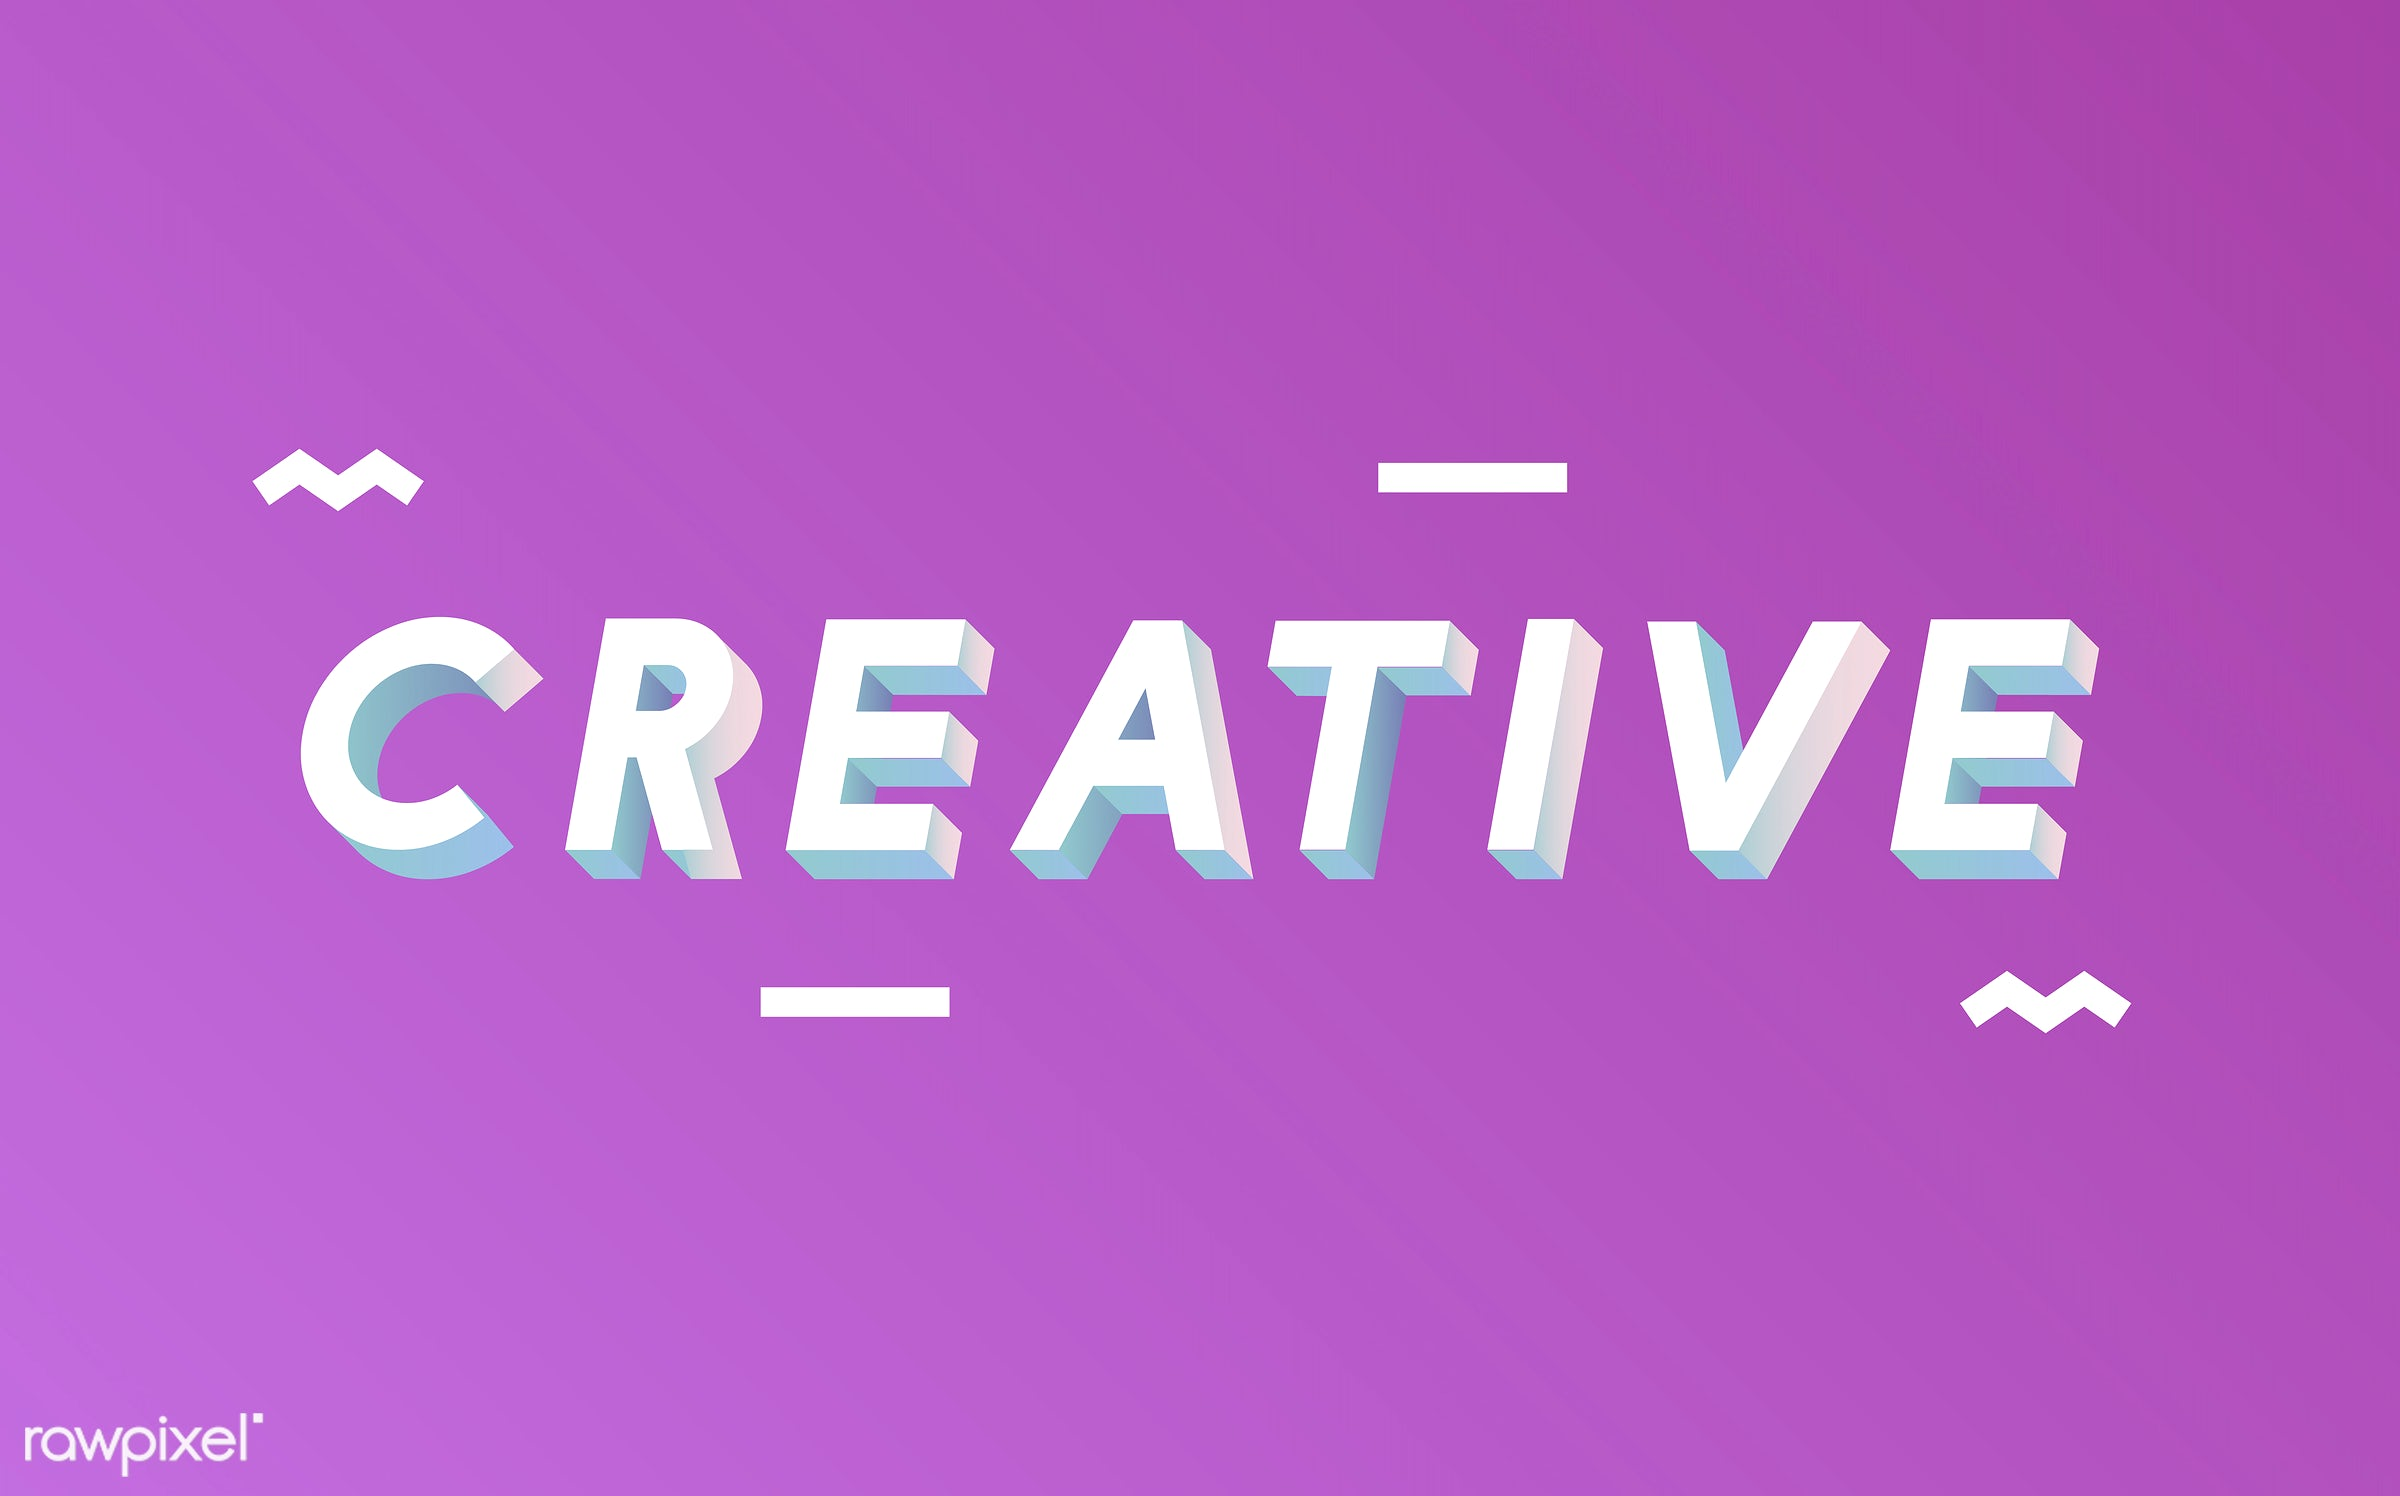 neon, colorful, 3d, three dimensional, vector, illustration, graphic, word, pink, white, creative, creativity